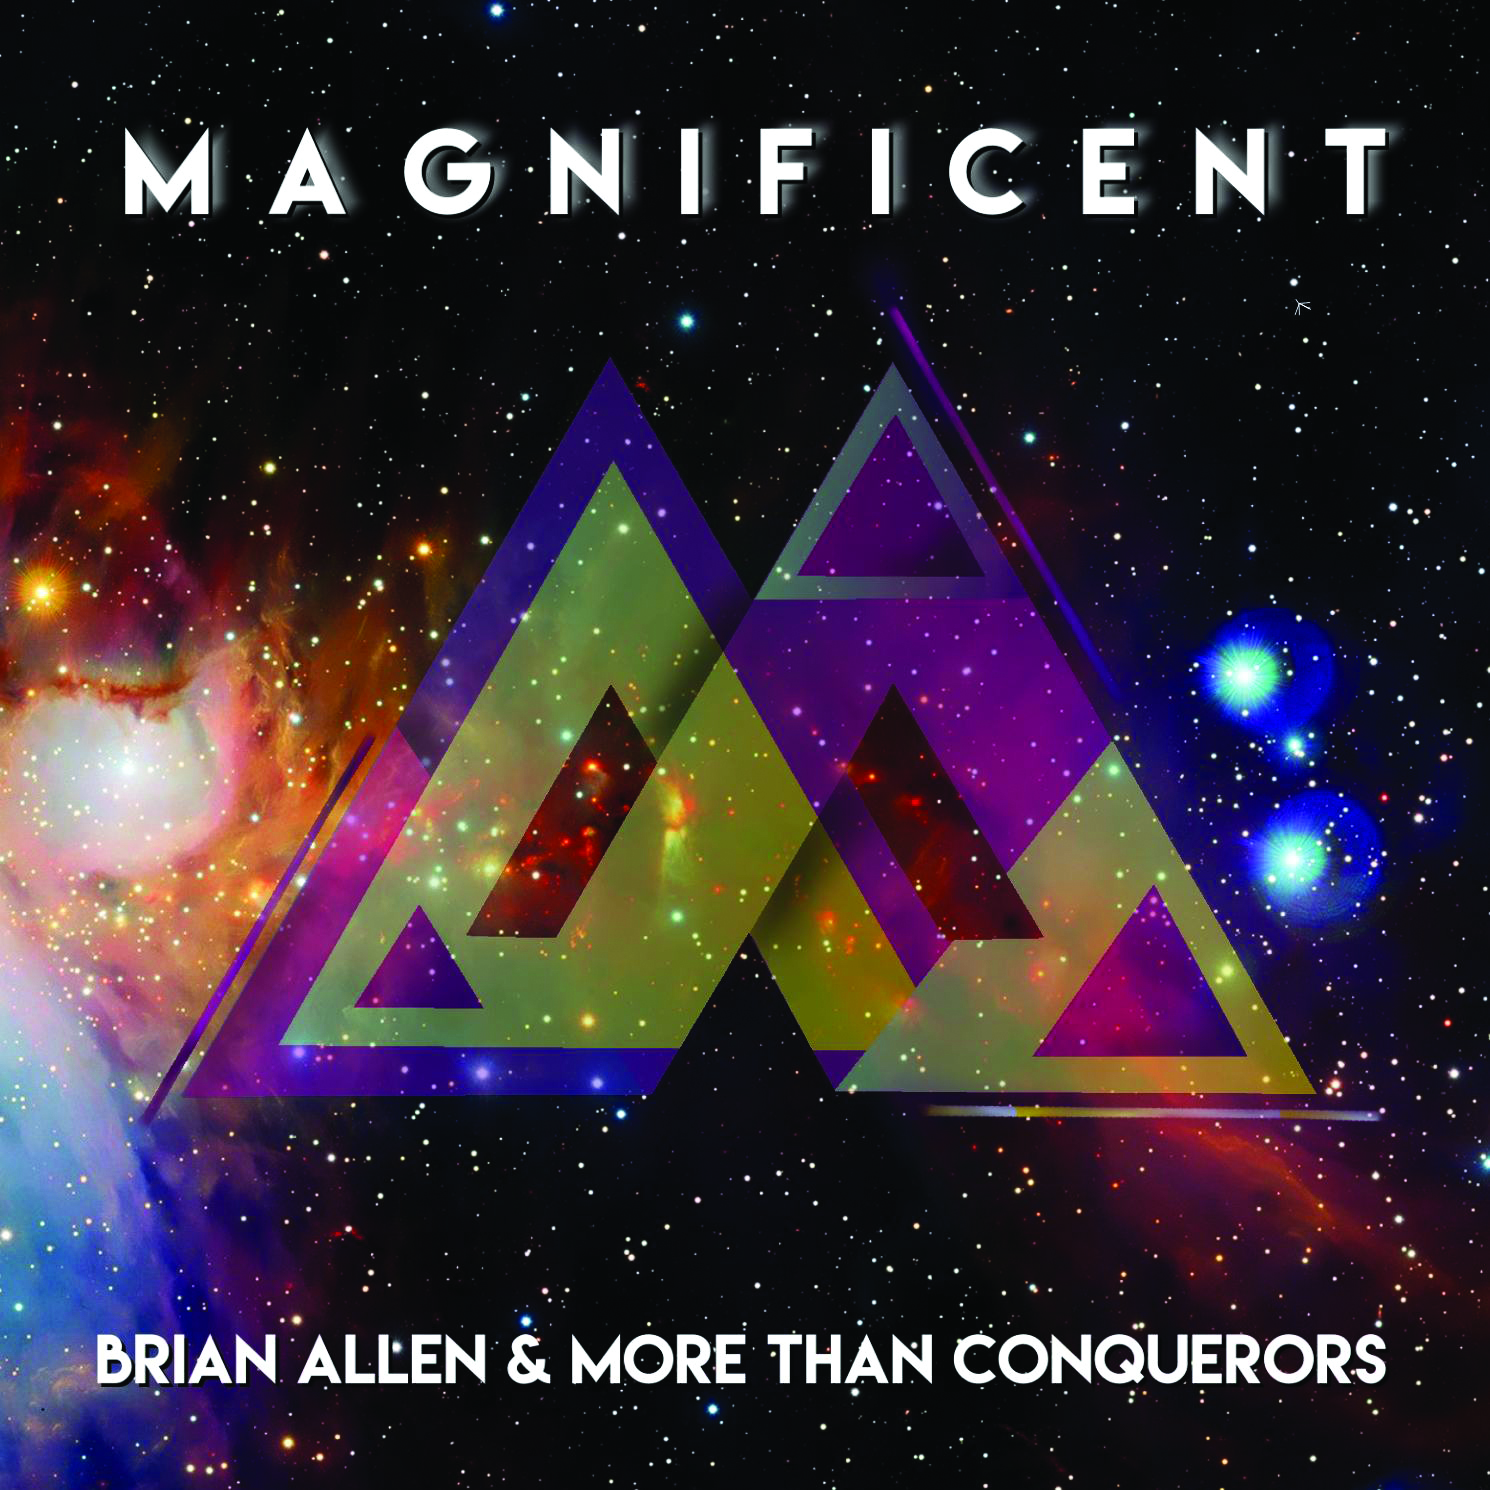 BRIAN ALLEN RELEASES NEW EP TITLED 'MAGNIFICENT'